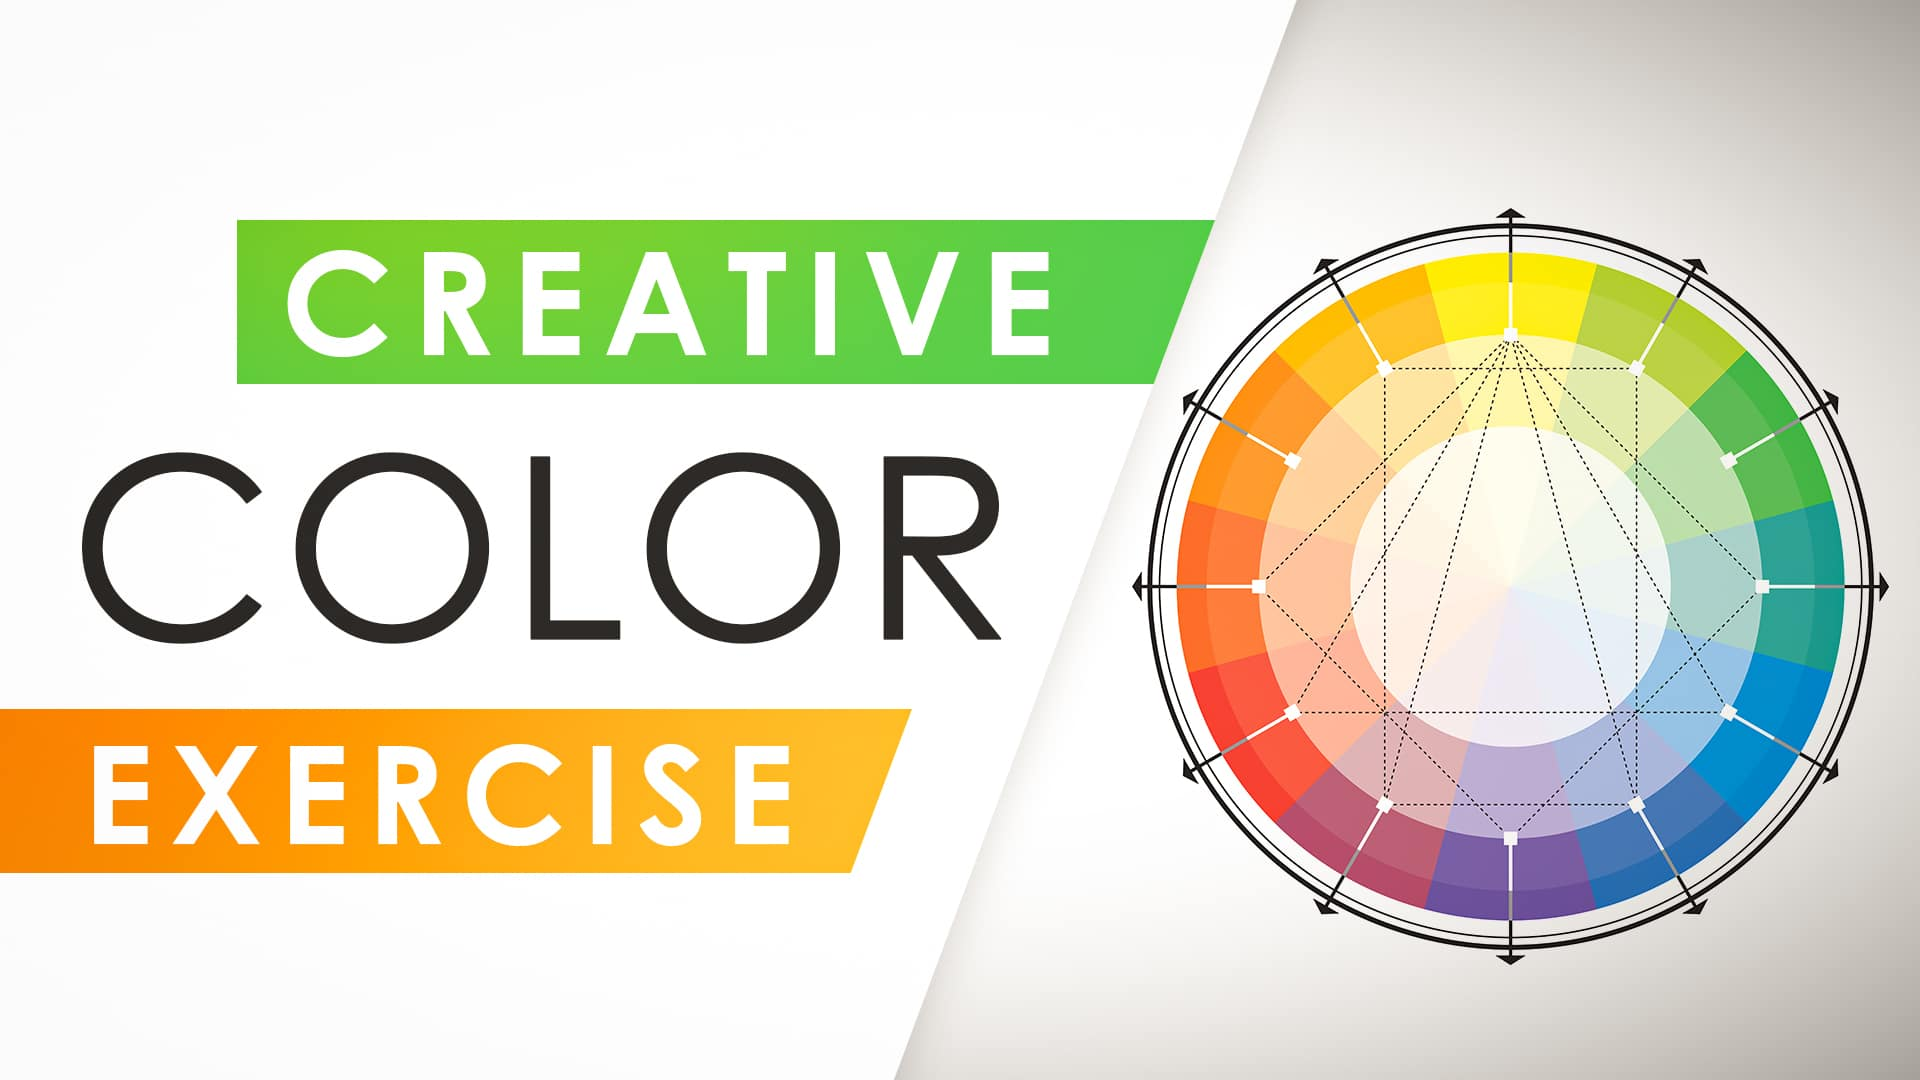 color theory book cover design